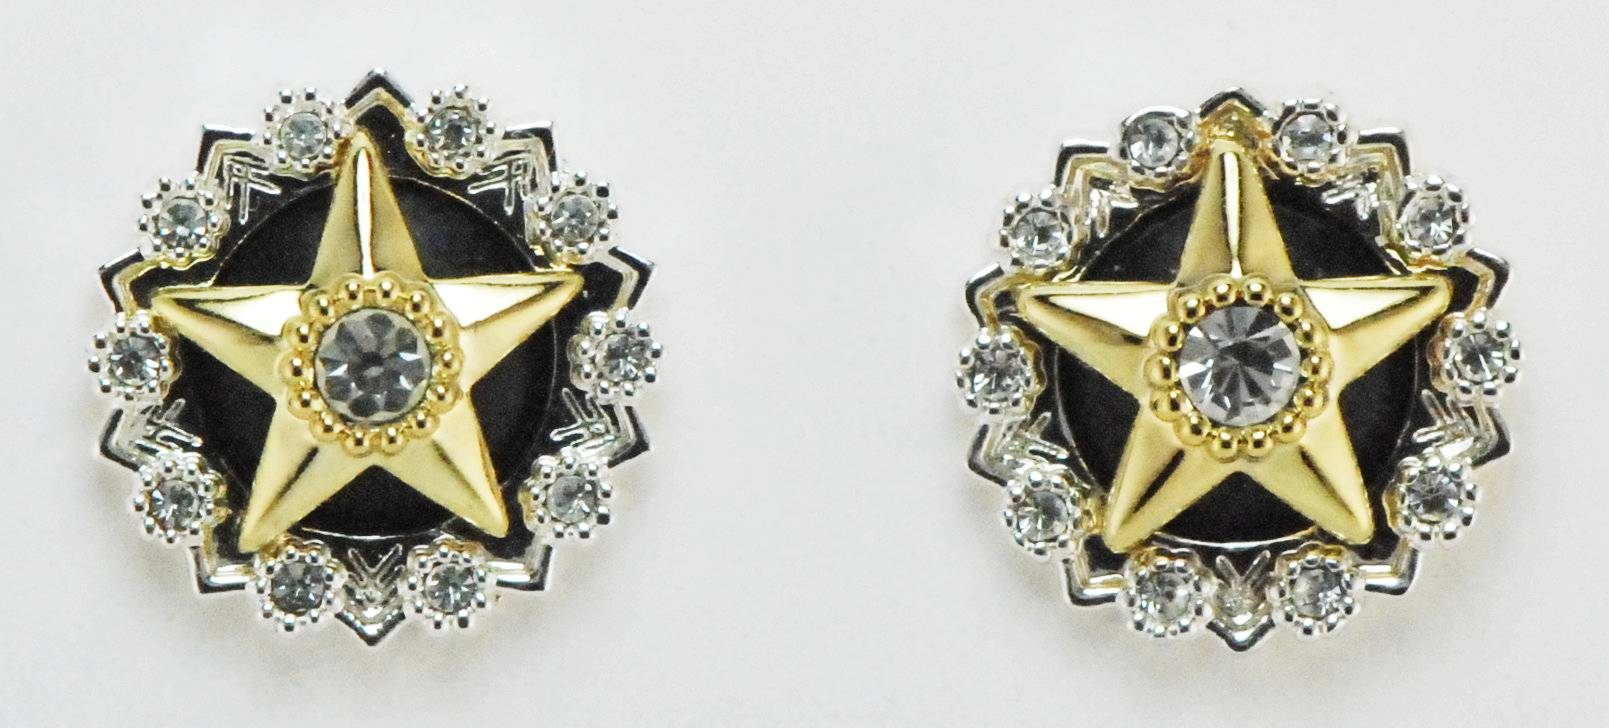 Western Edge Jewelry Crystal Center Star Earrings